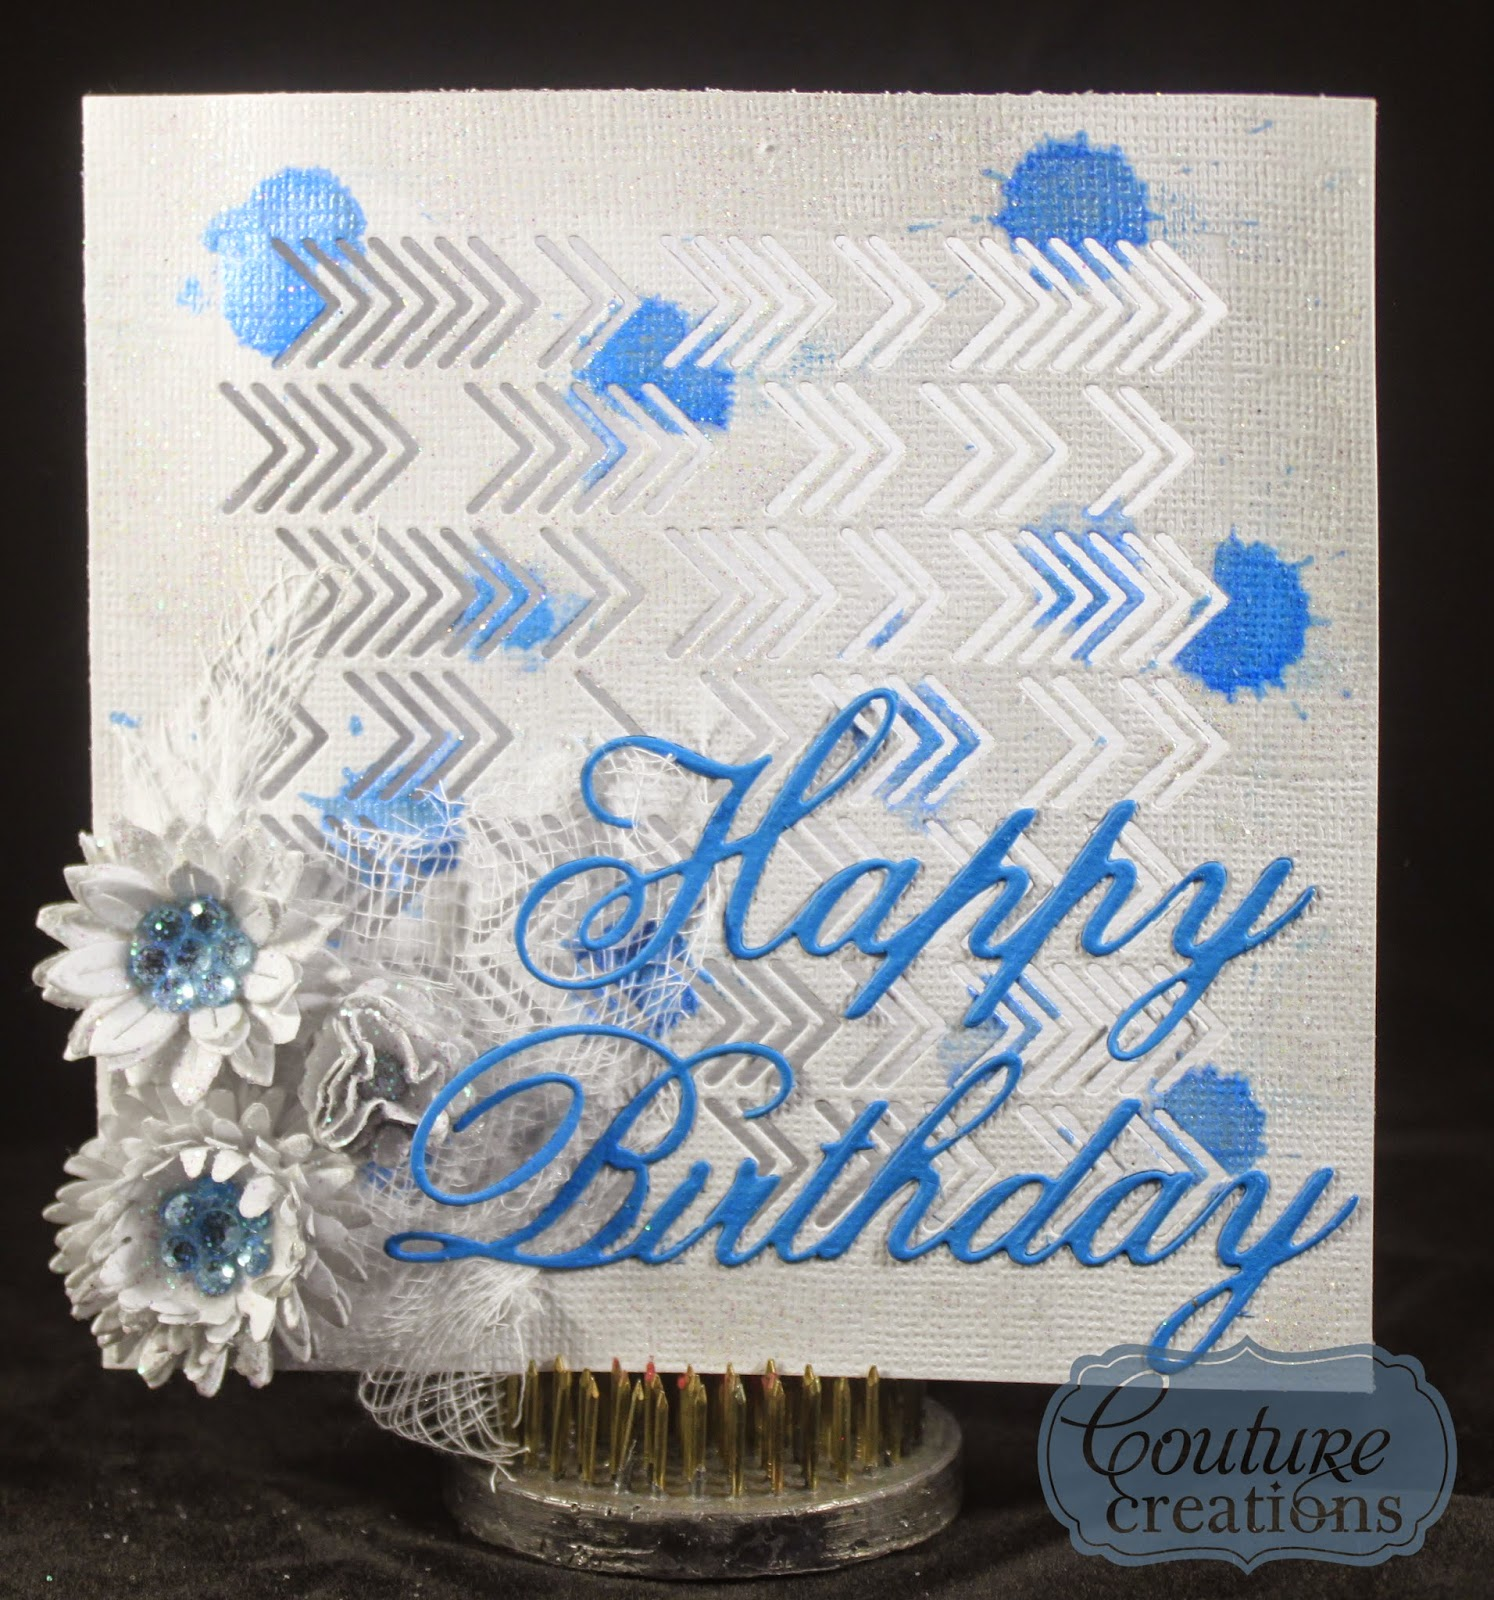 Happy Birthday To My Love Couture: Artdeco Creations Brands: Happy Birthday To Blue By Tracey